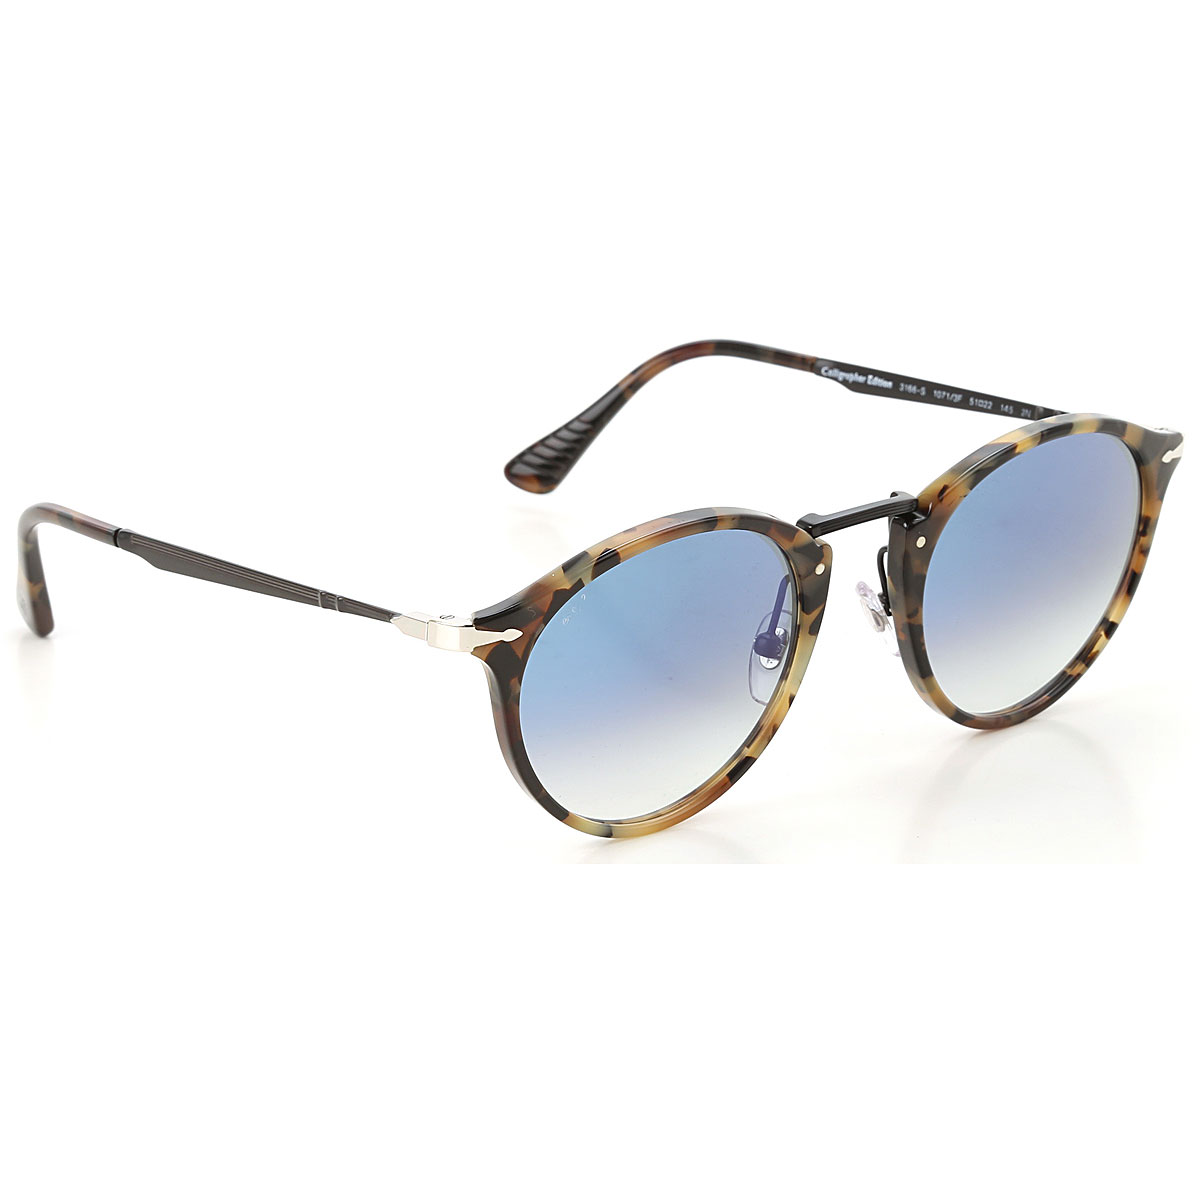 Image of Persol Sunglasses On Sale, Marble Brown, 2017